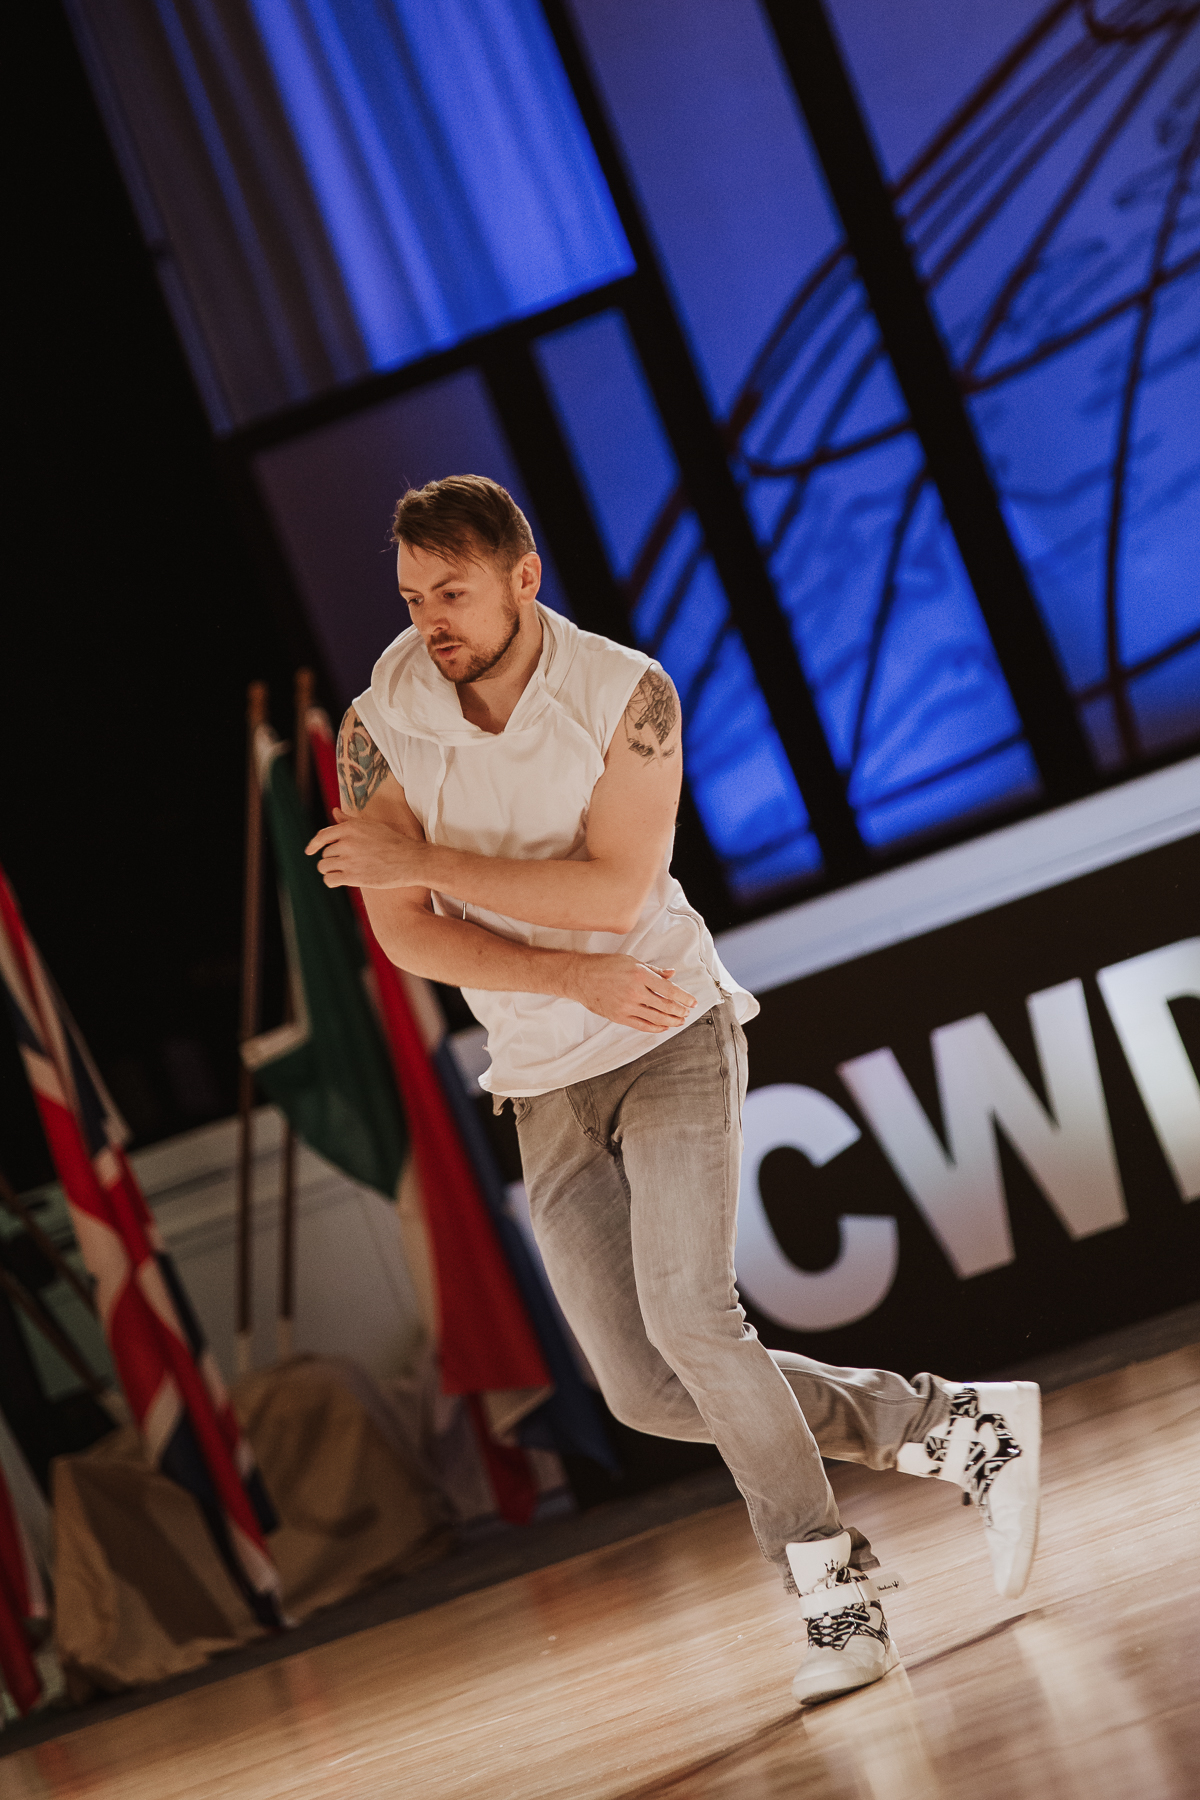 UCWDCworlds19_lo_res-25.jpg